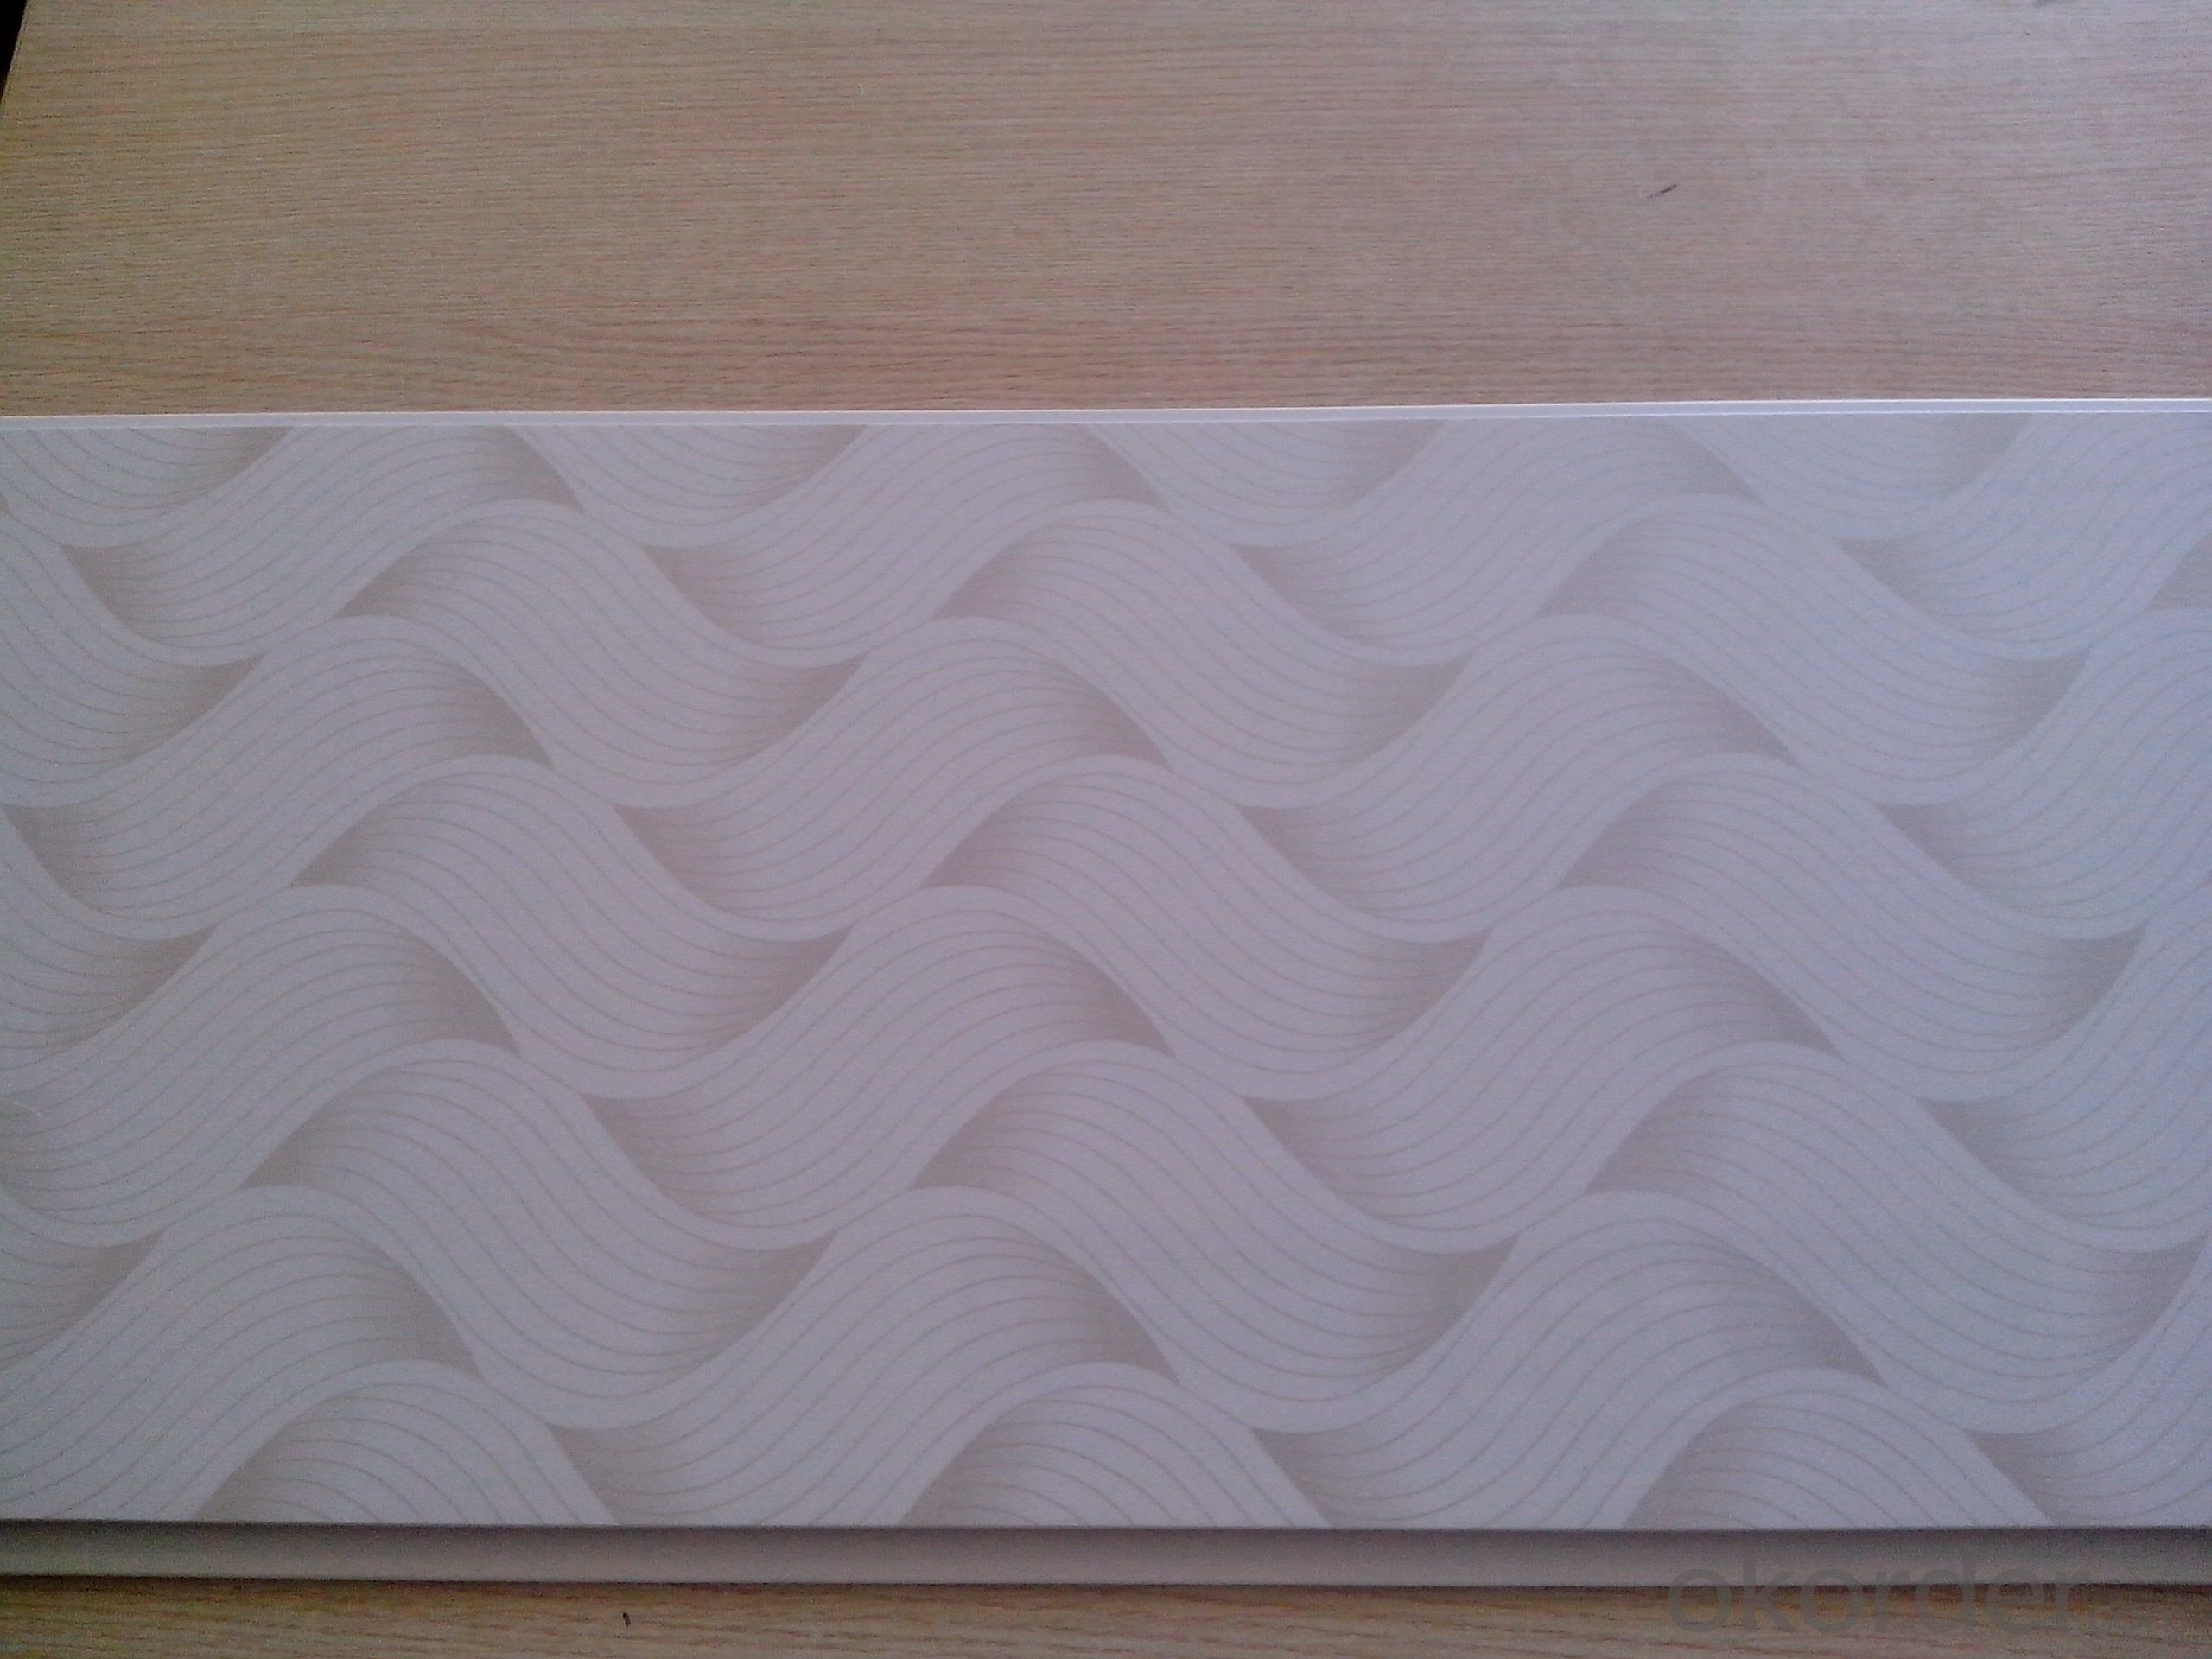 PVC Ceiling Wall Panels for Cheap  Decoration